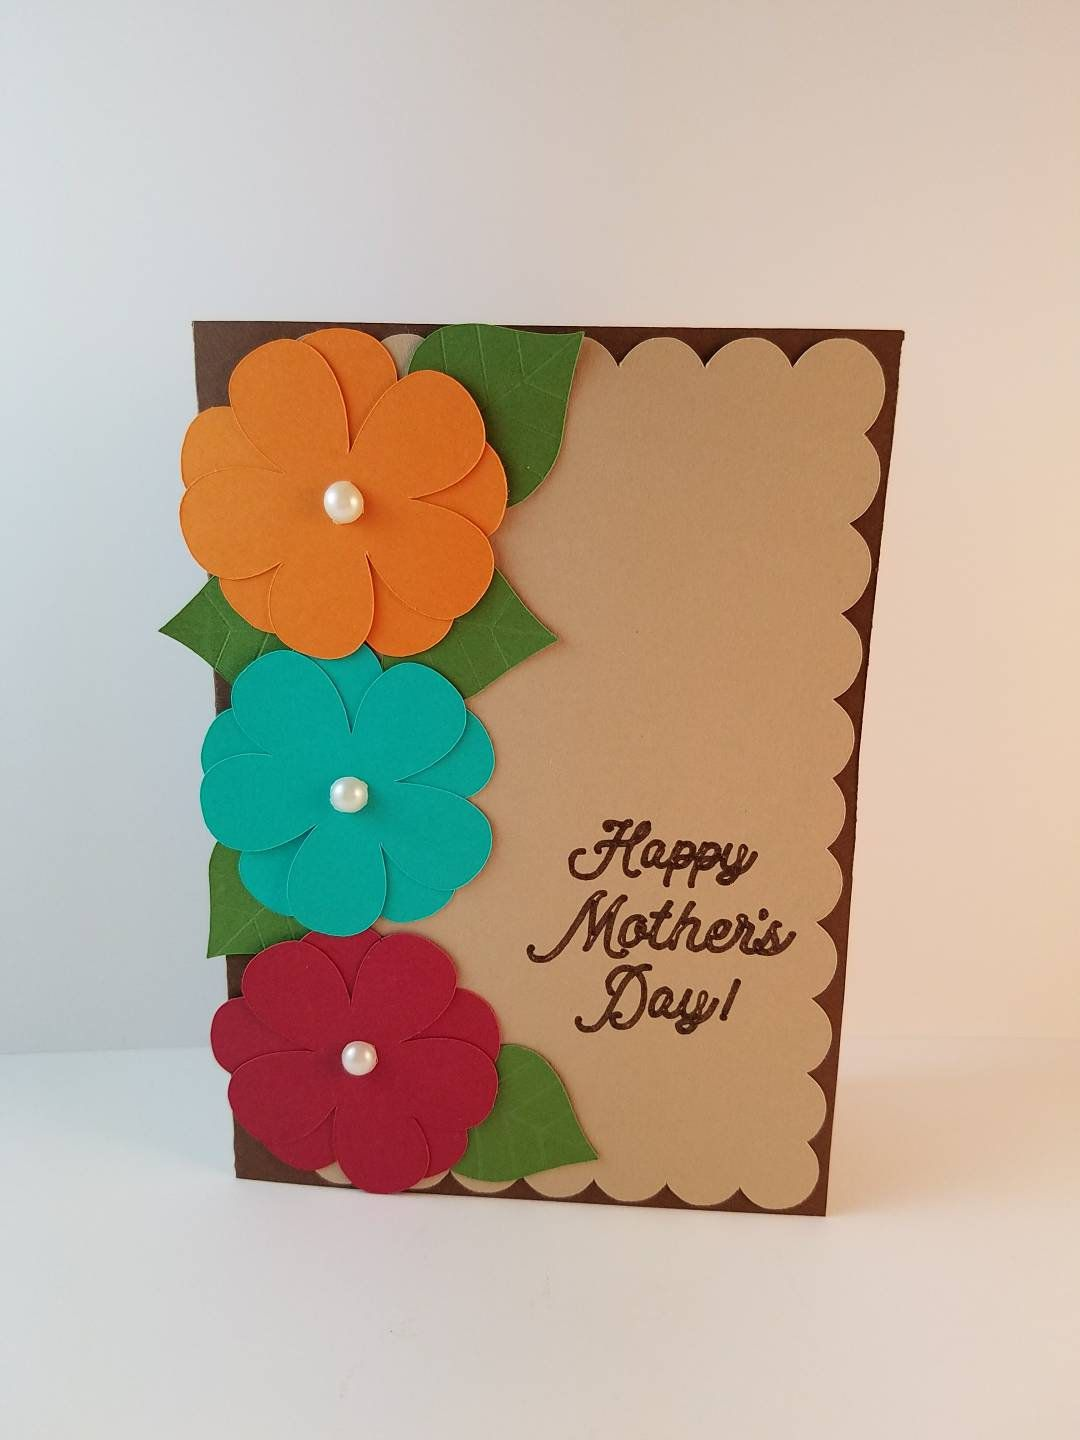 Horrible Law Message Happy Mors Day Mor Law S Day Card Happy Day Day Gift Blank Greetingcard Day Card Happy Day Day Gift Blank Happy Mors Day Mor